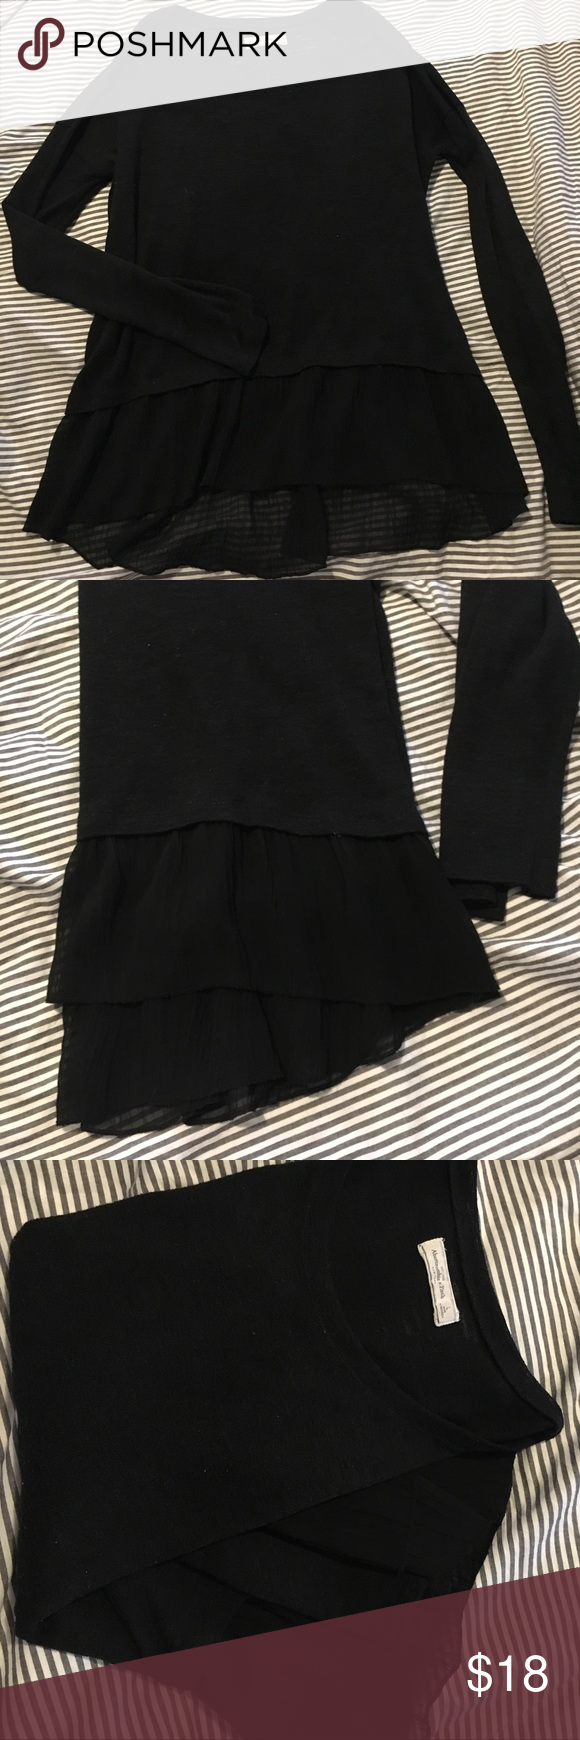 Abercrombie & Fitch black sweater | Abercrombie fitch, Sheer ...